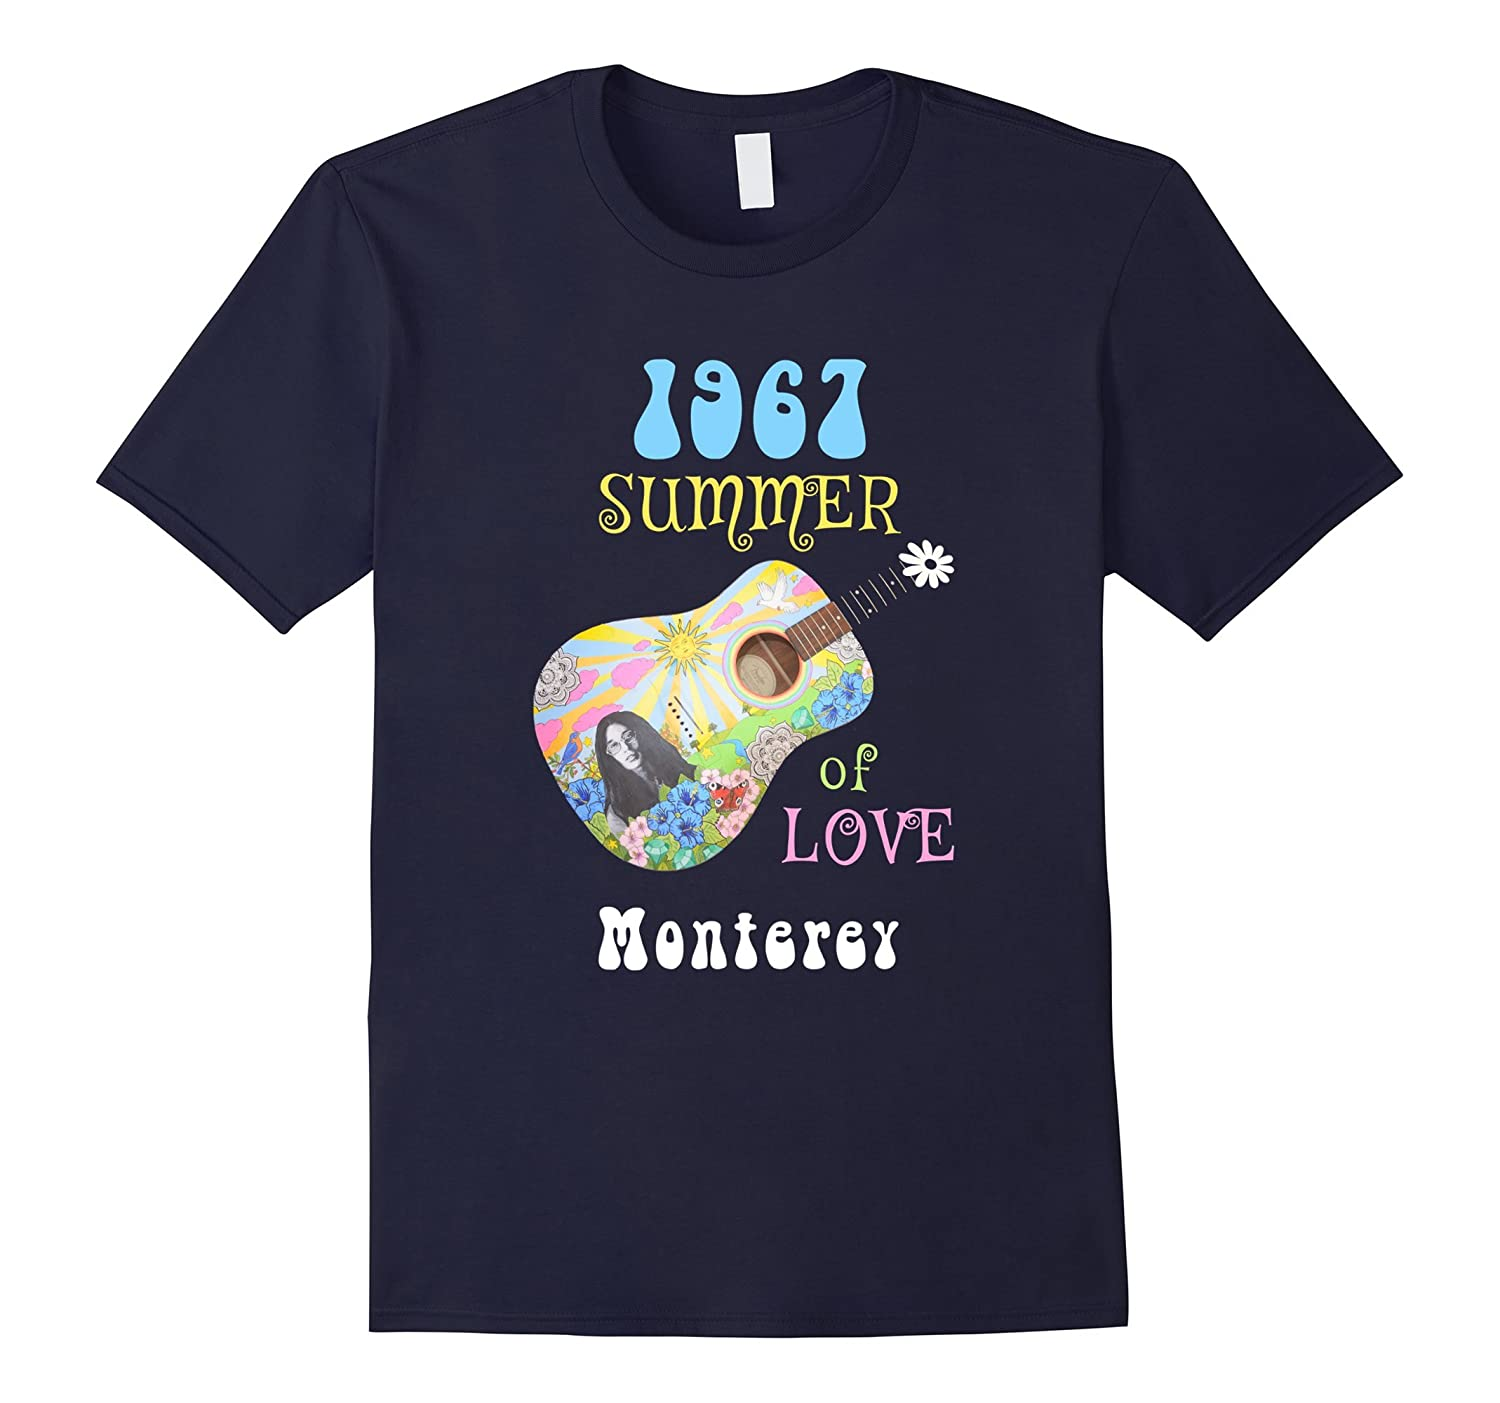 1967 Summer of Love Monterey Hippie T-shirt-CD